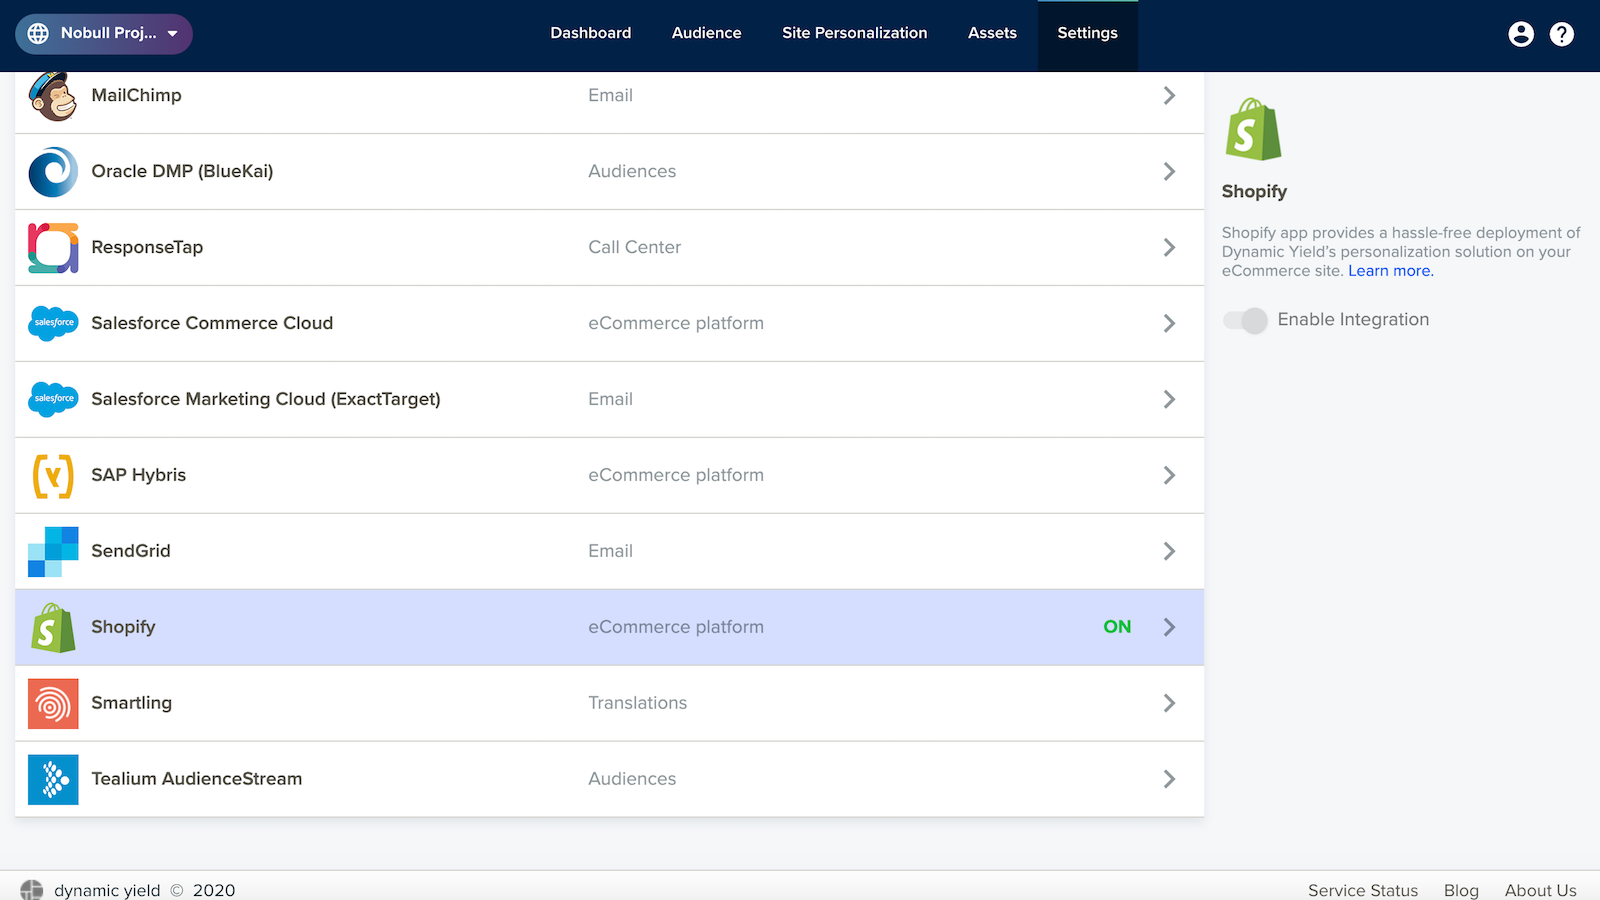 Integration Screen for Activating the Shopify App